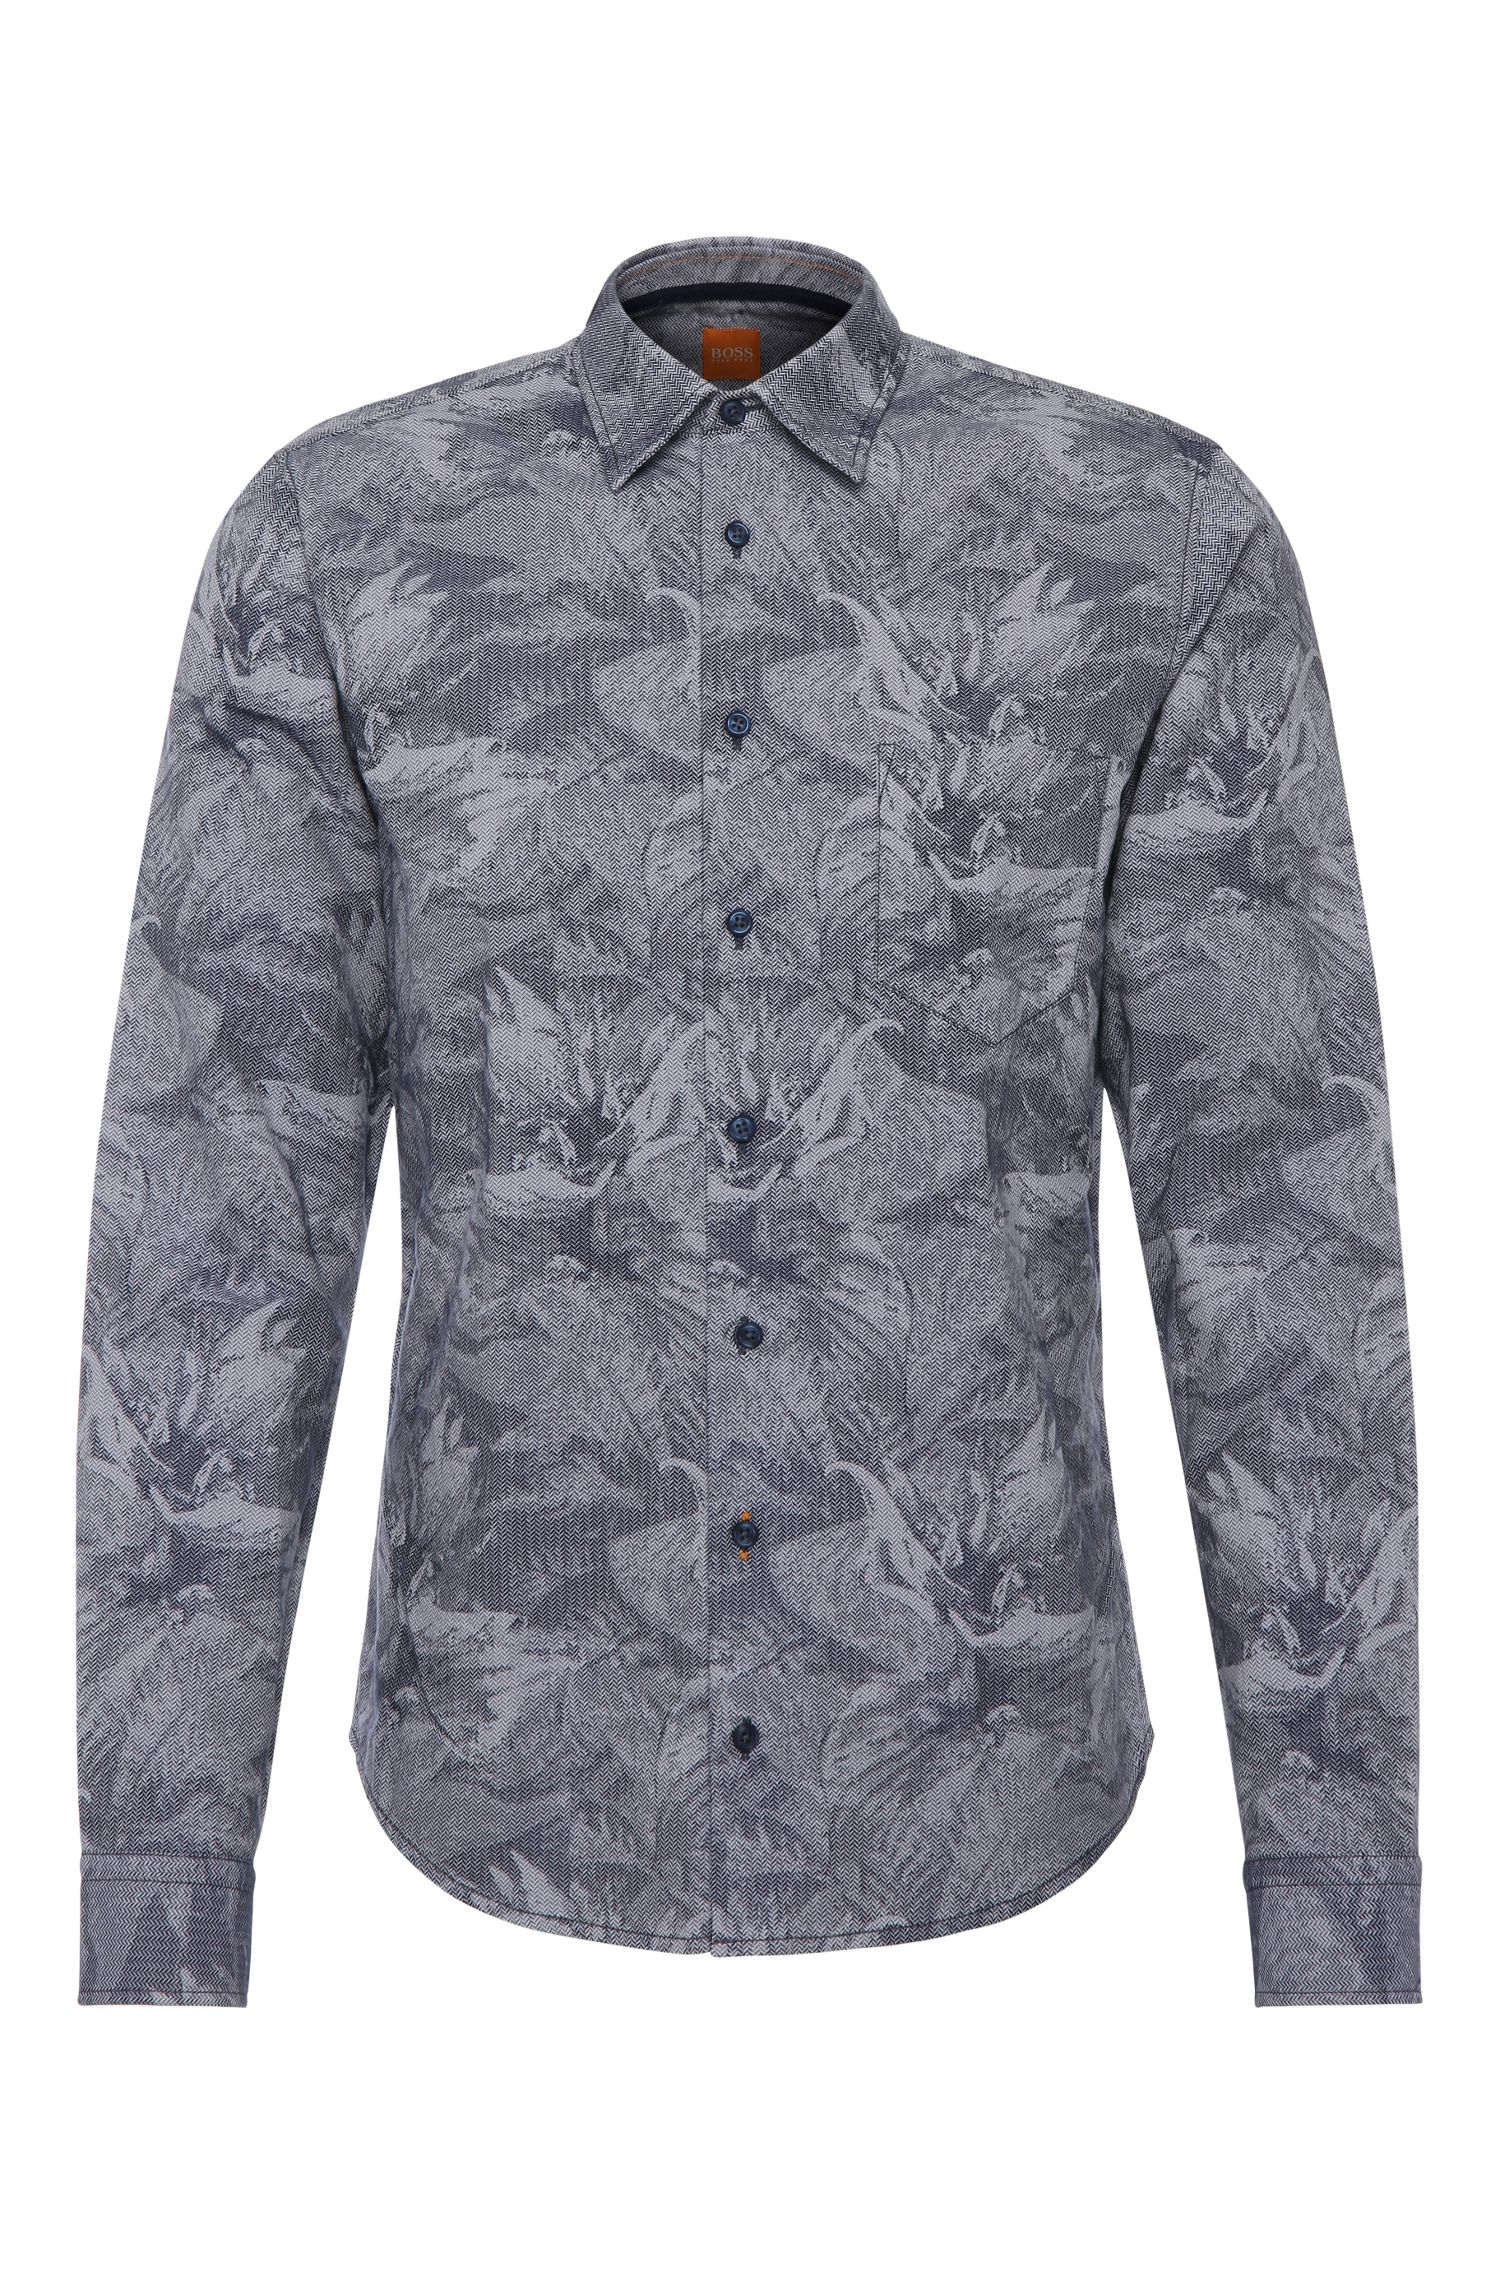 'EnameE' | Slim Fit, Cotton Printed Button Down Shirt